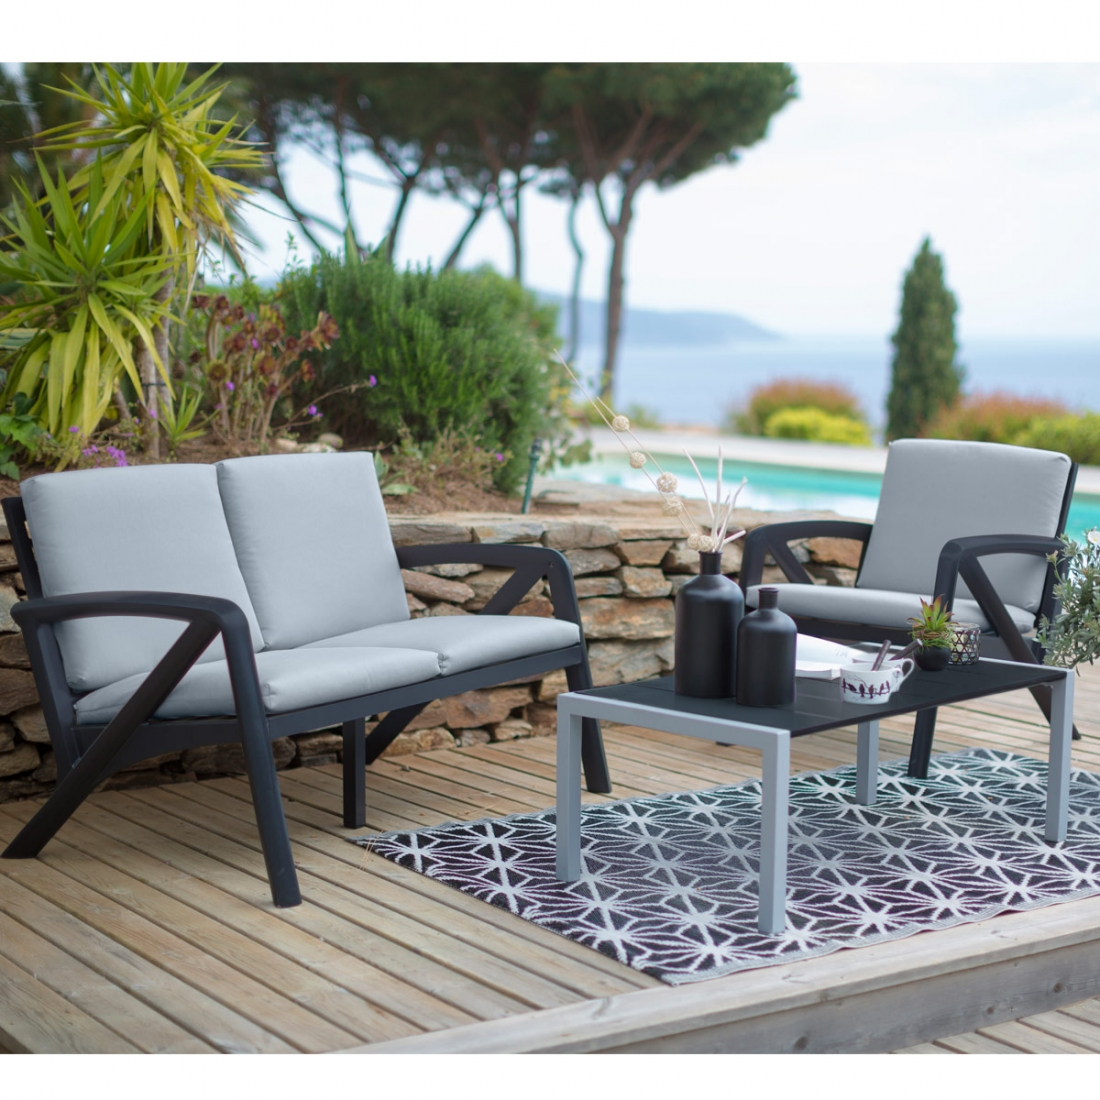 Salon de jardin lounge sunday barcelone design grosfillex for Truffaut salon de jardin